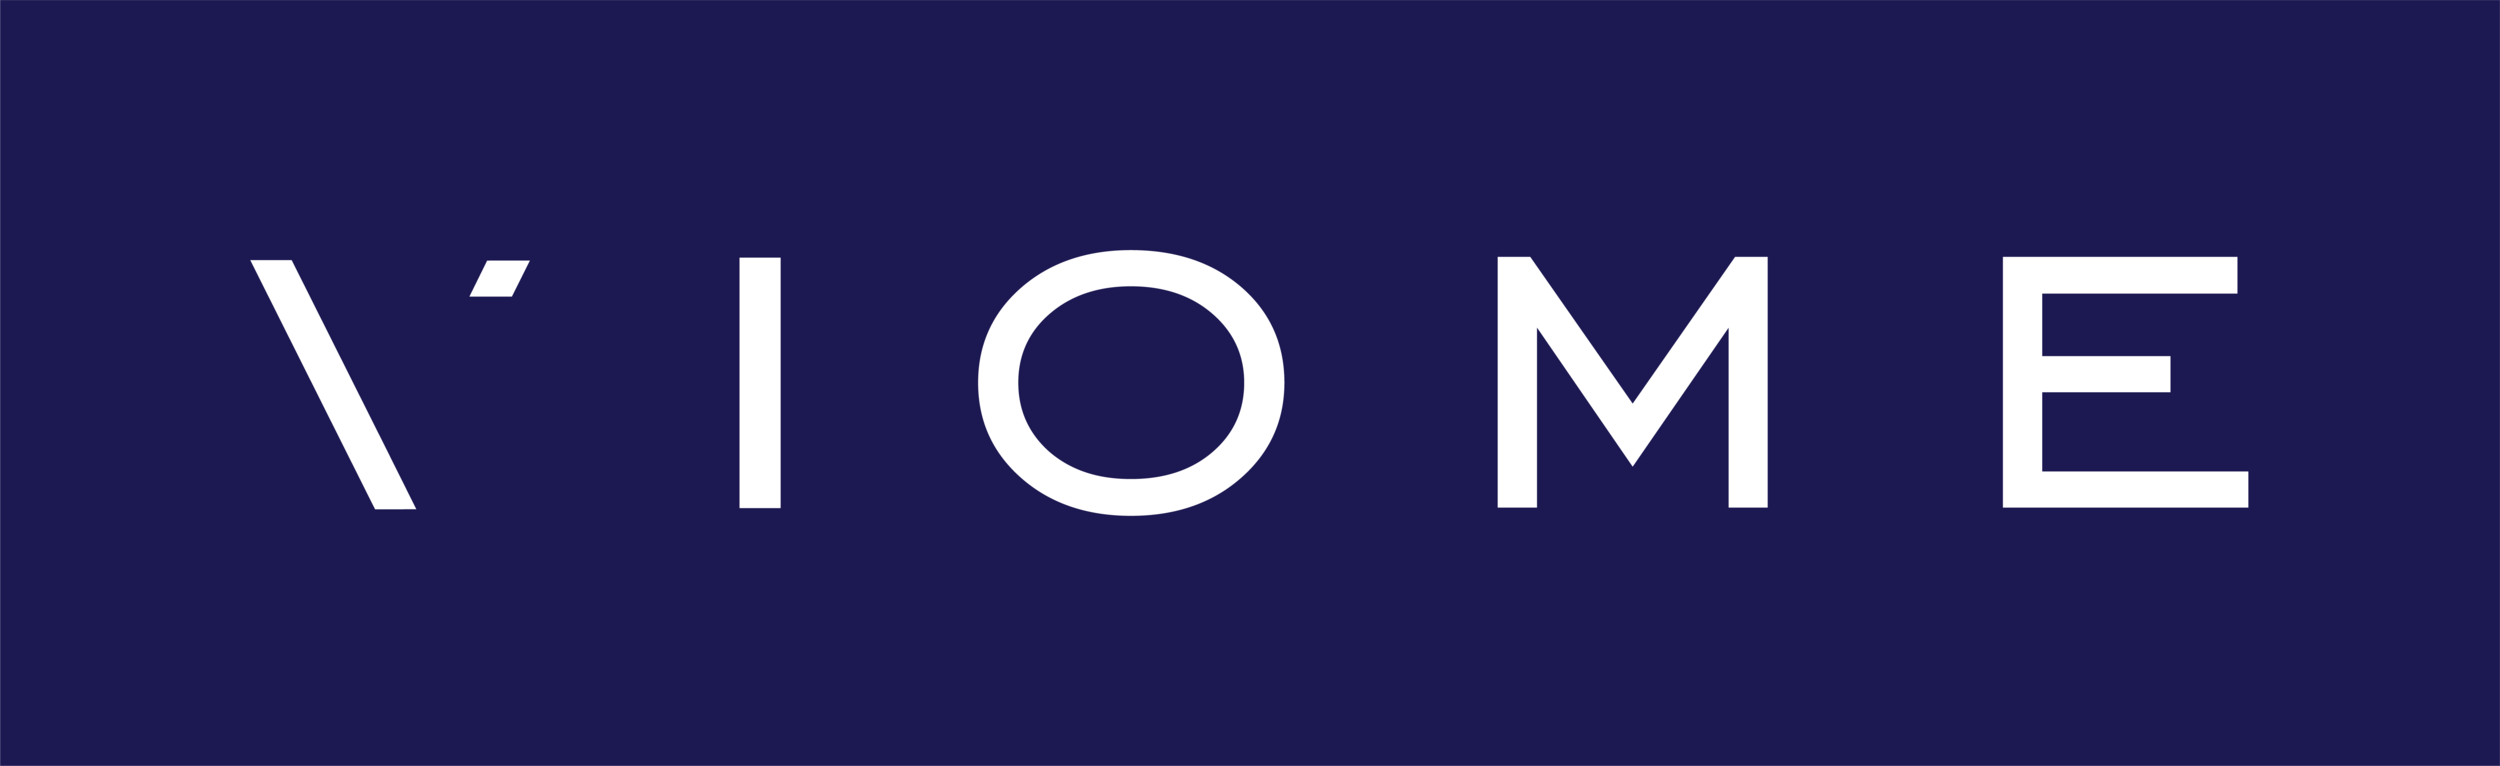 Viome Logo Inverted.png